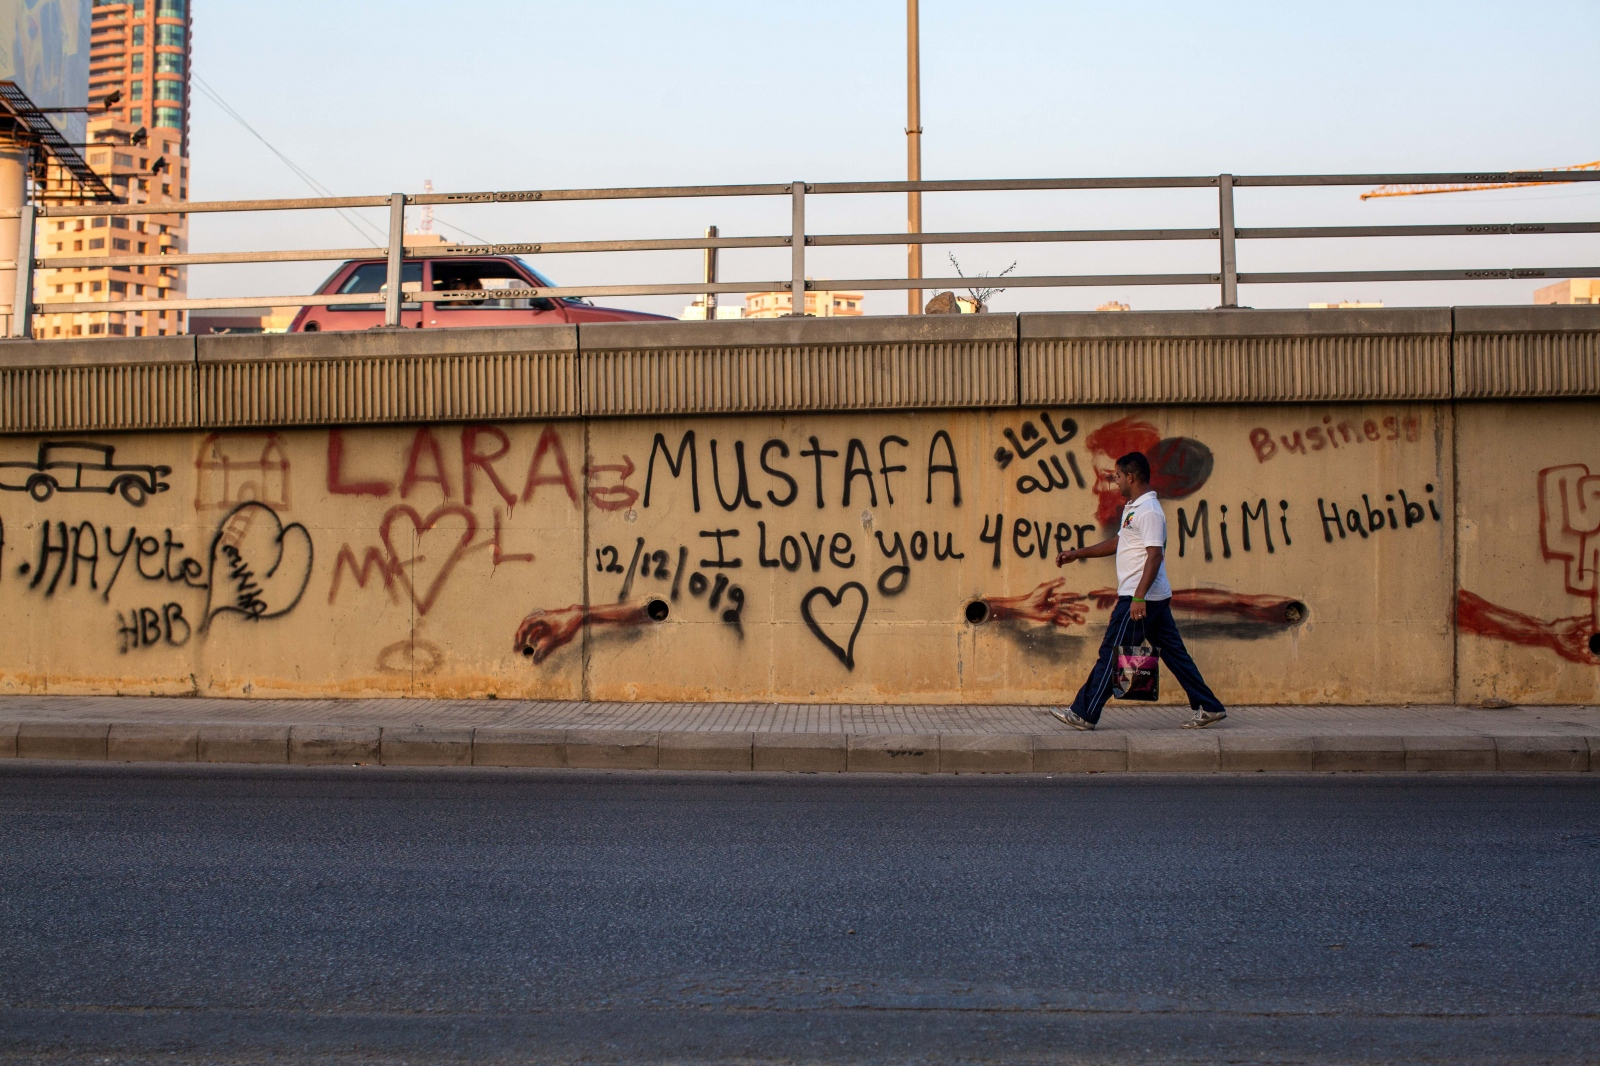 Beirut, LEBANON, July 16, 2013: Many of Lebanon's highways are tagged with Graffiti love messages. The Lebanese are some of the kindest people I ever met, as their struggles and stories reflect the history they have lived.